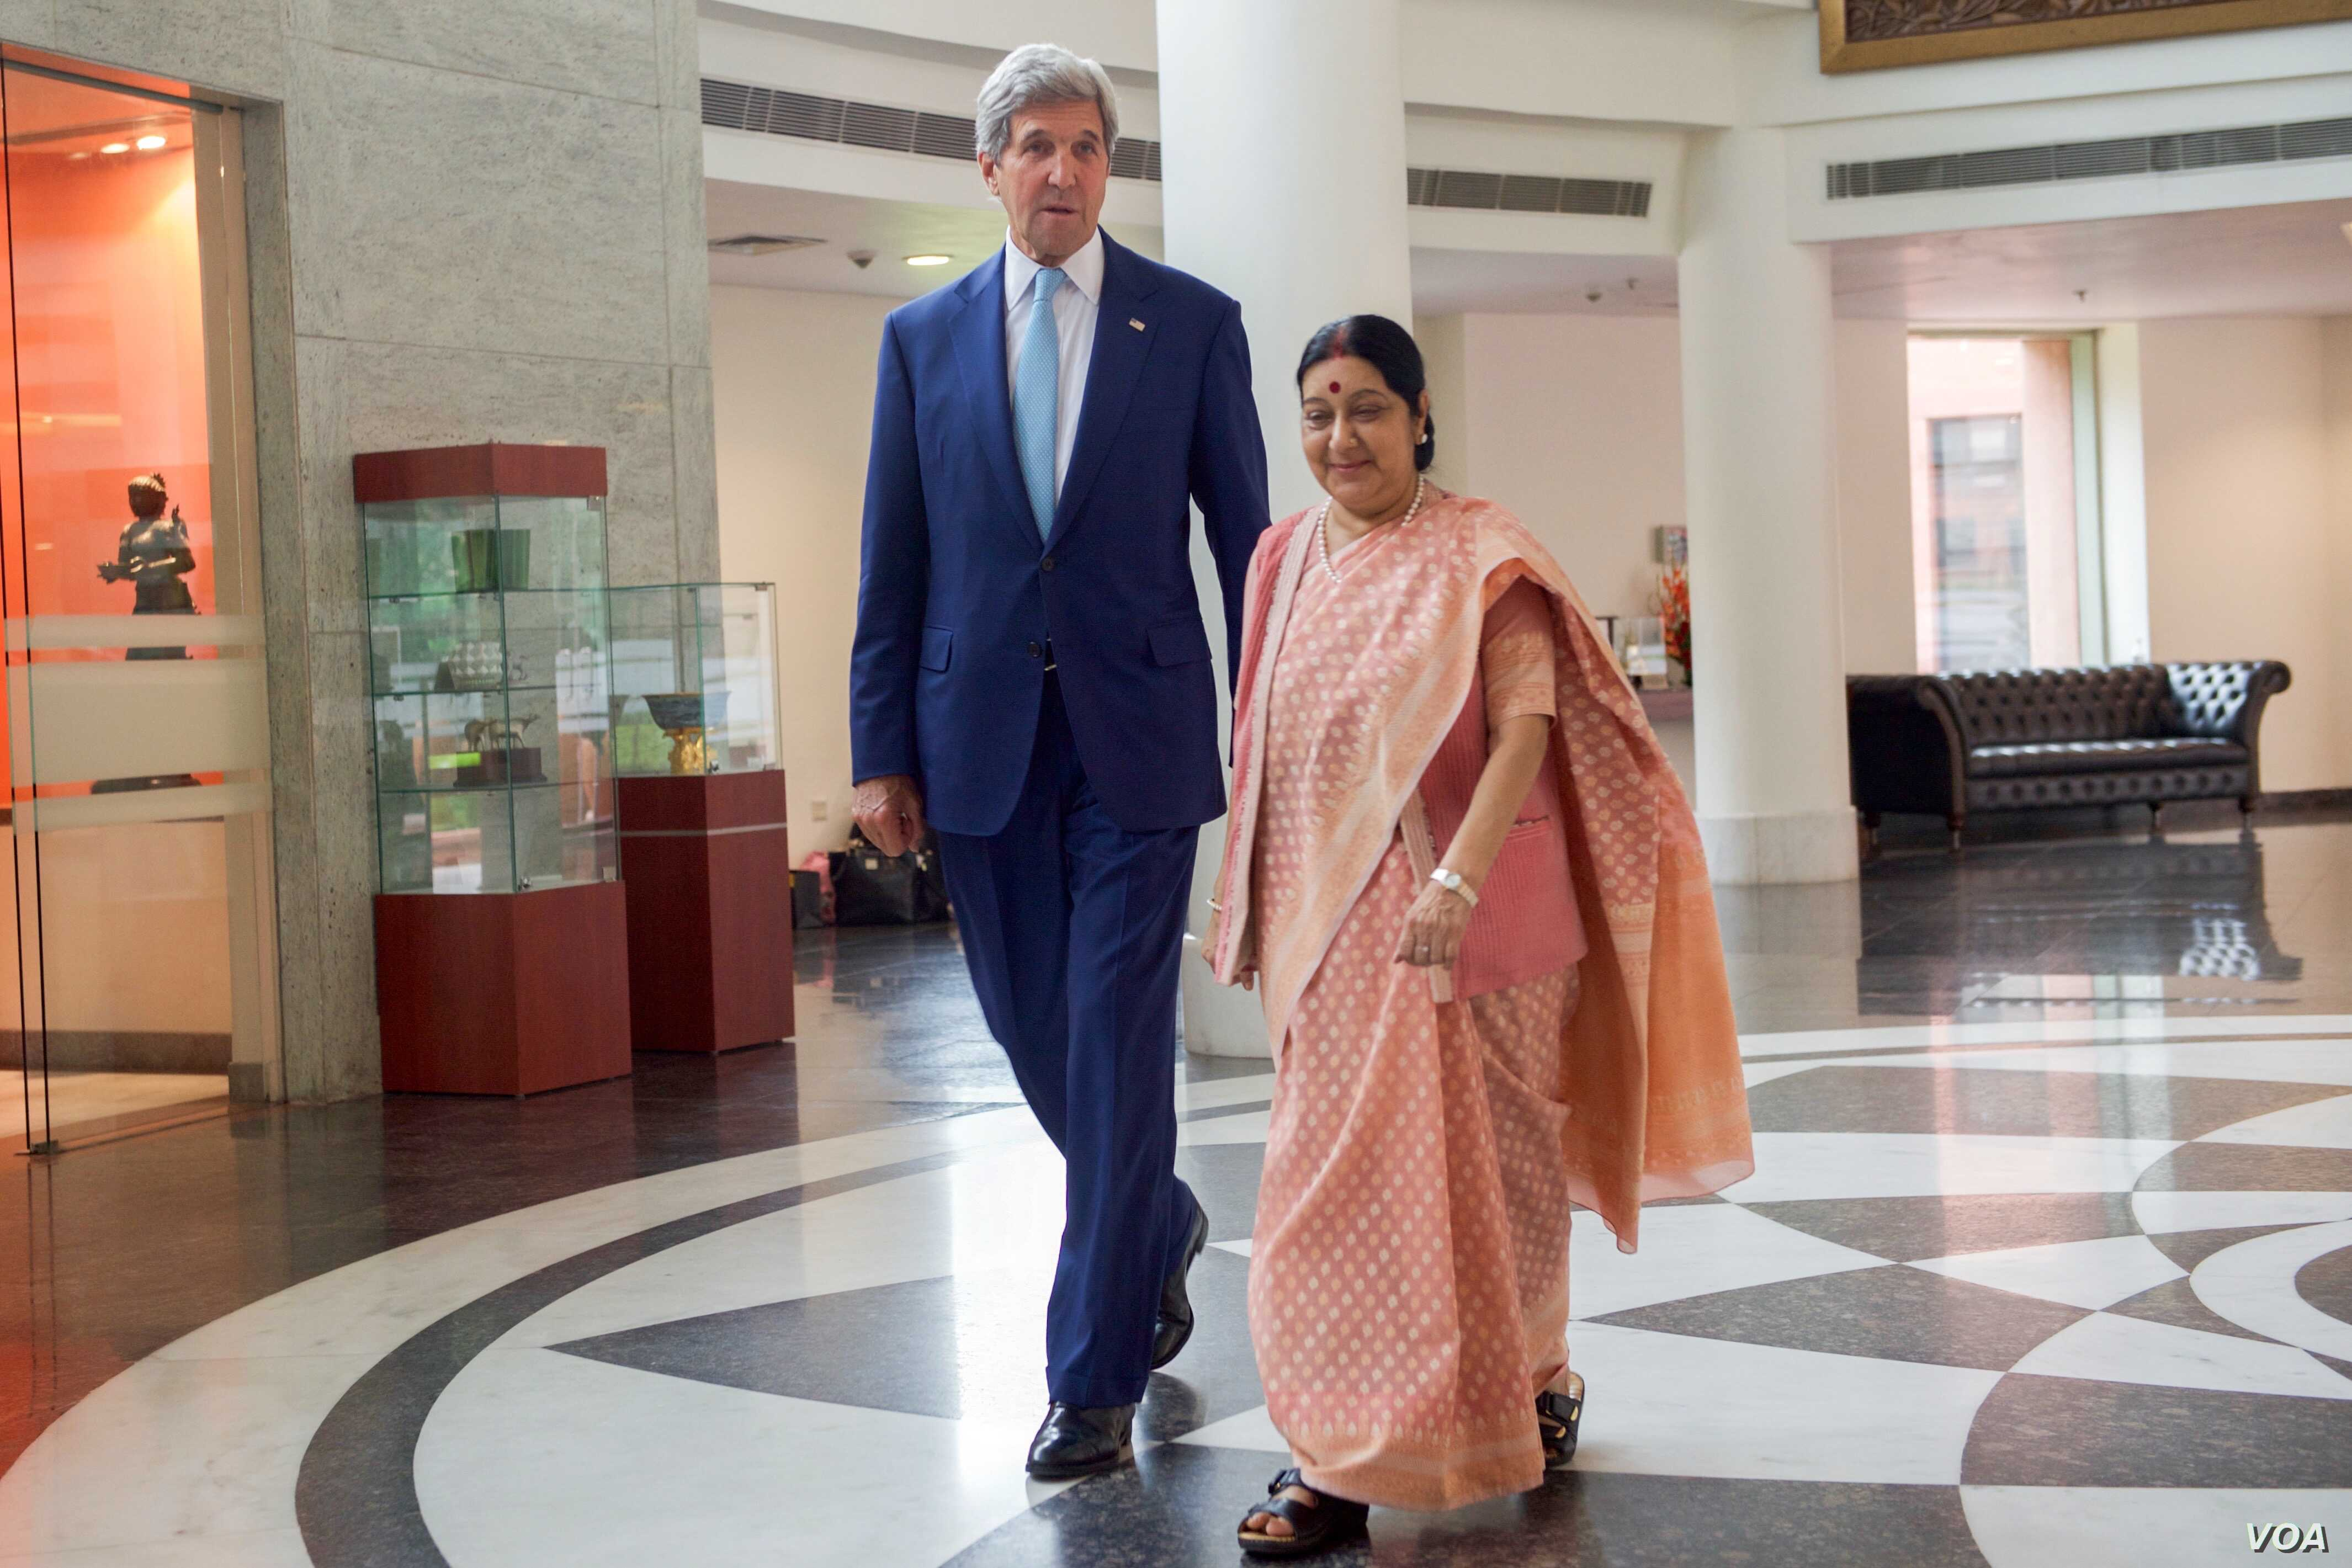 U.S. Secretary of State John Kerry walks with Indian Minister of External Affairs Shushma Swaraj on August 30, 2016, after he arrives at the Jawarhalal Nehru Bhawan in New Delhi, India, for a bilateral meeting.